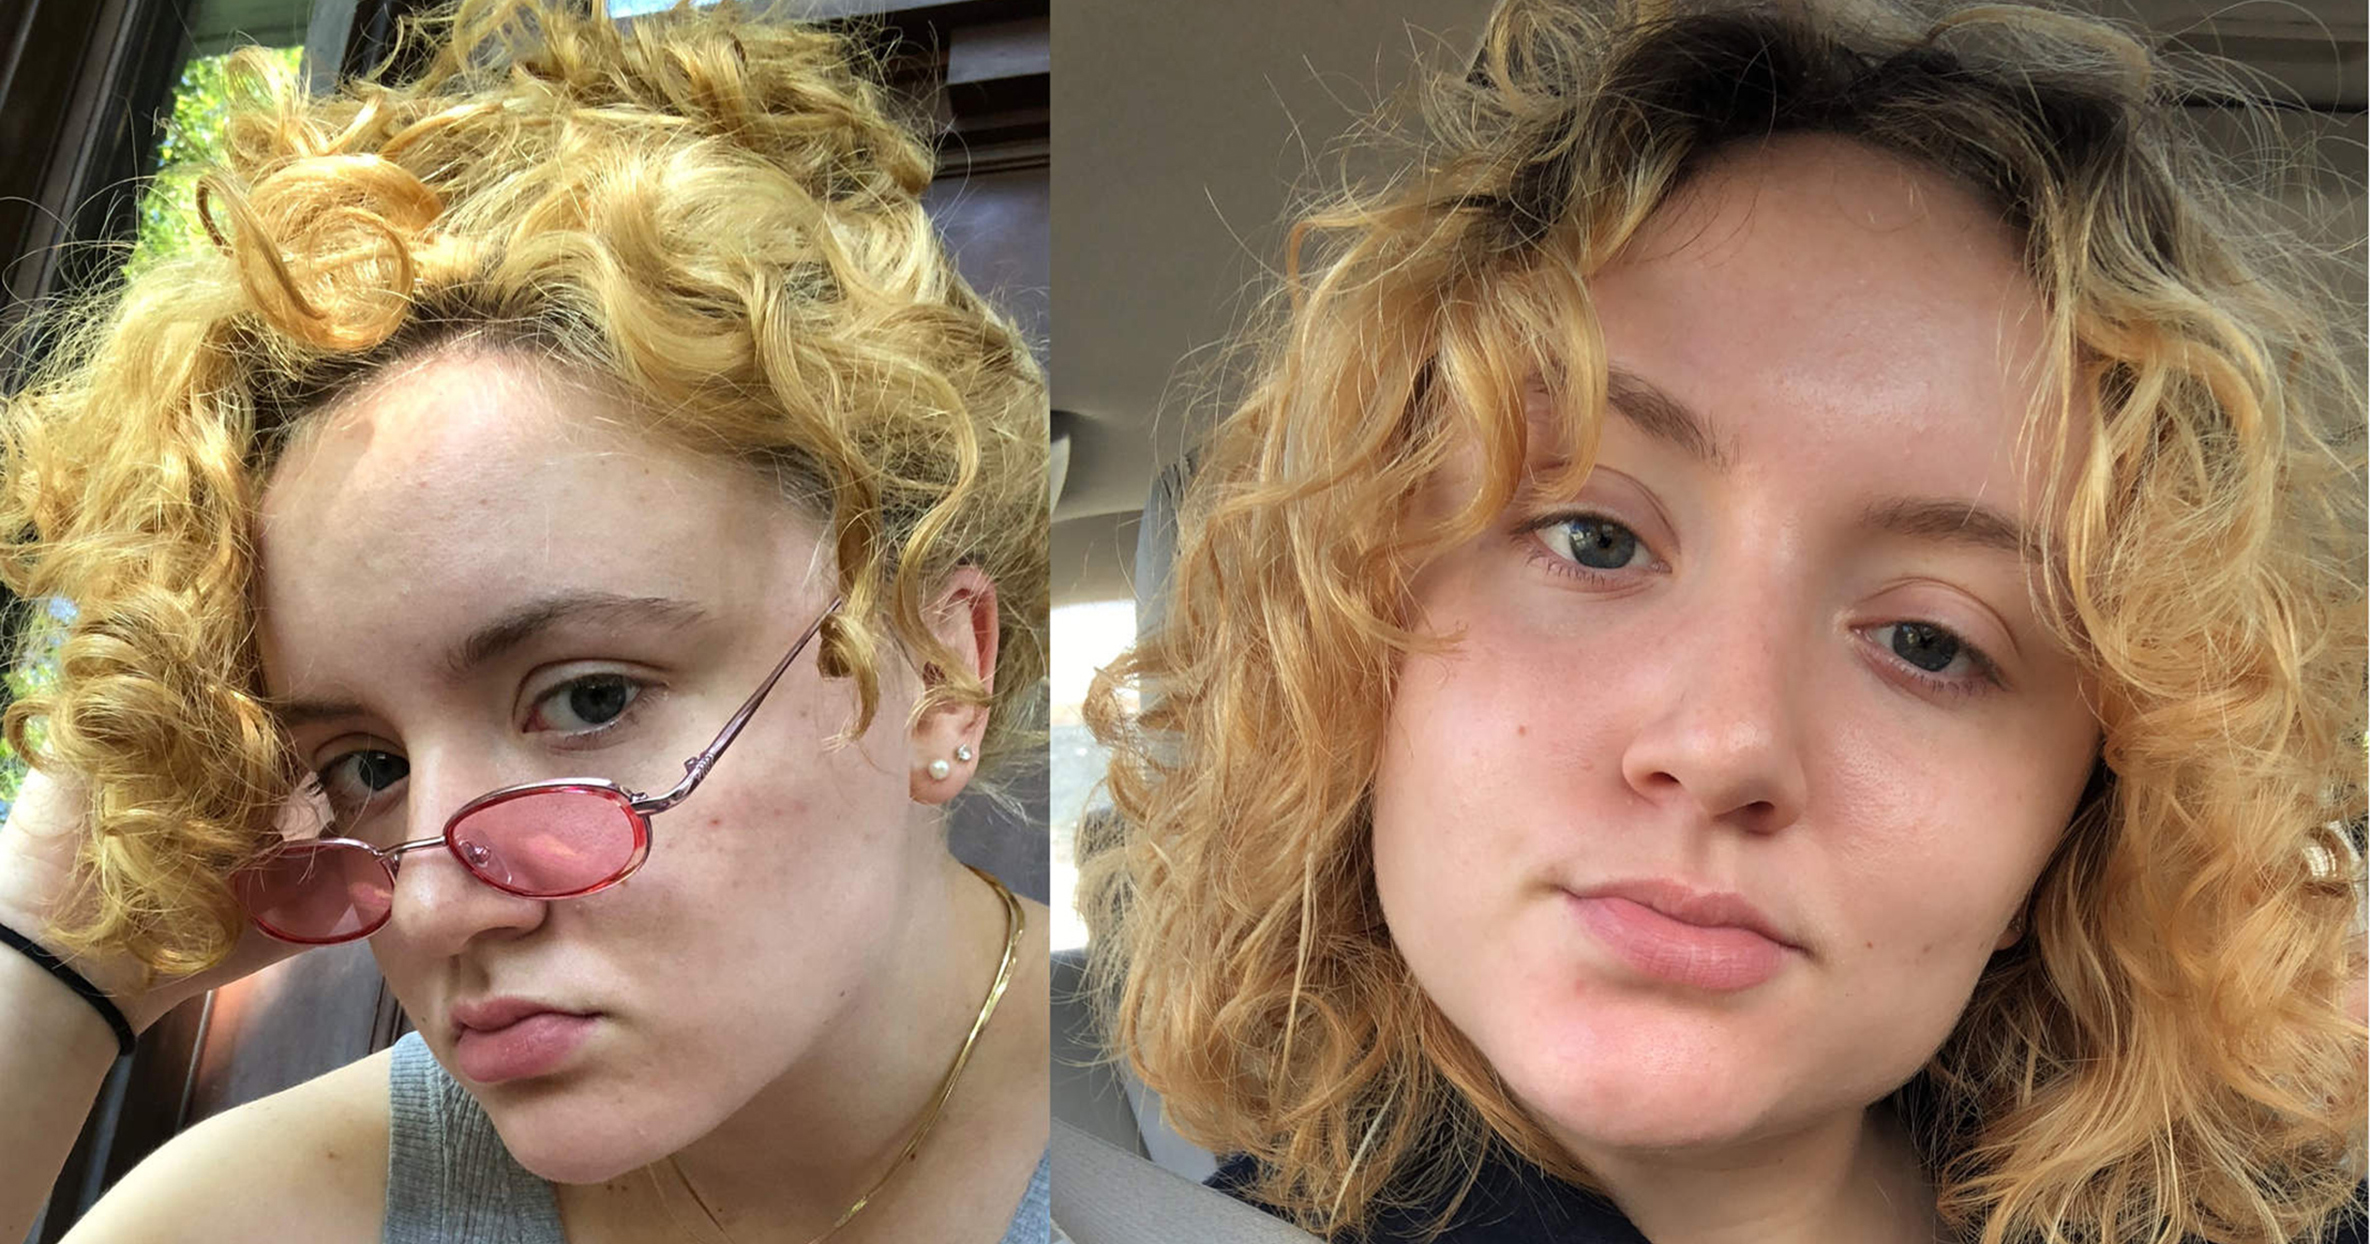 Side-by-side photos of woman